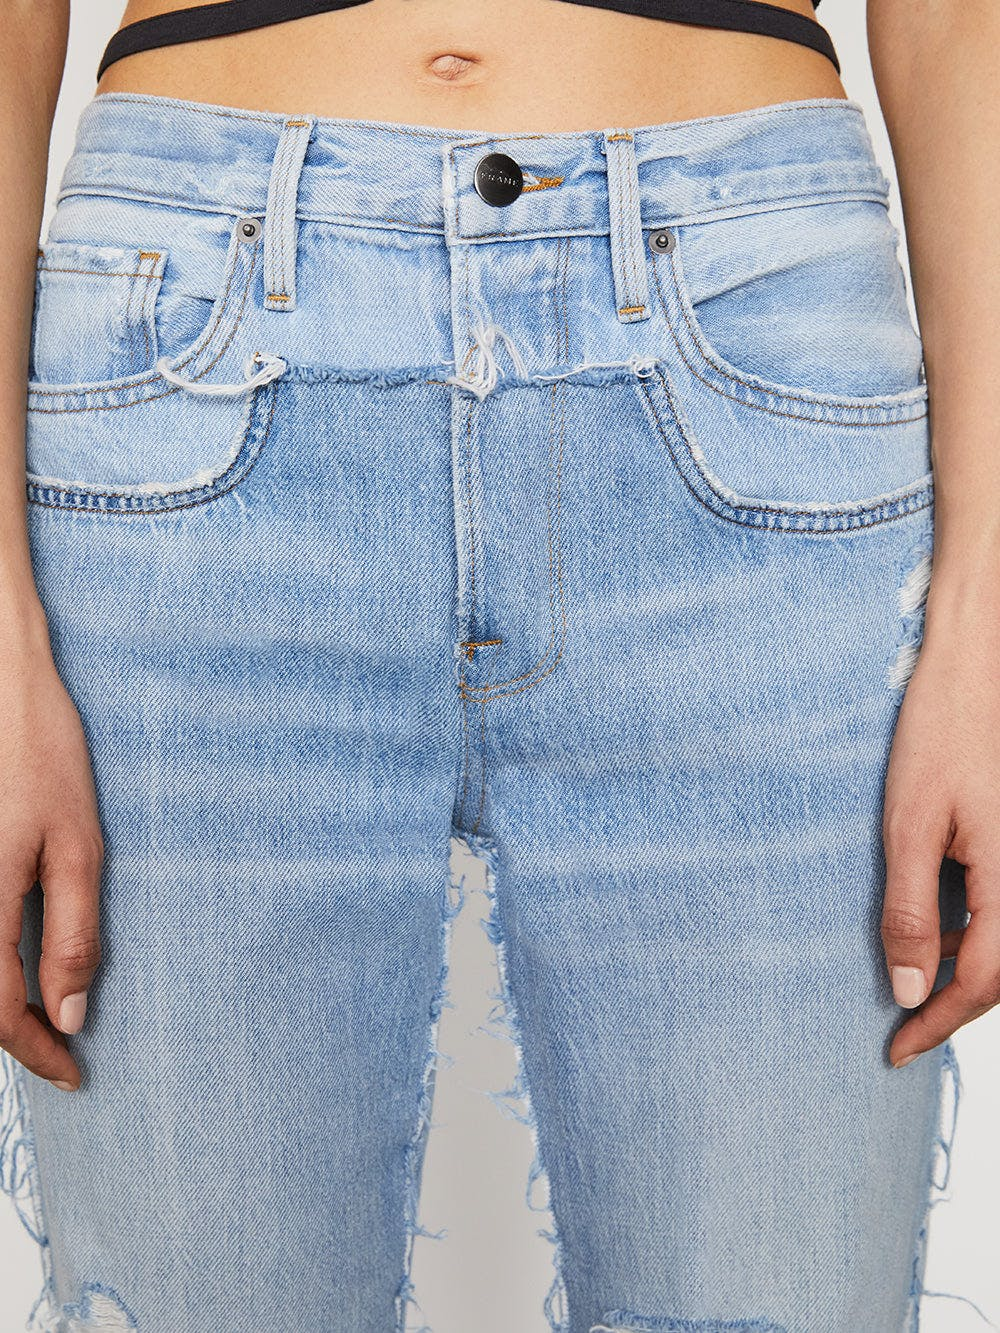 jeans front detail view